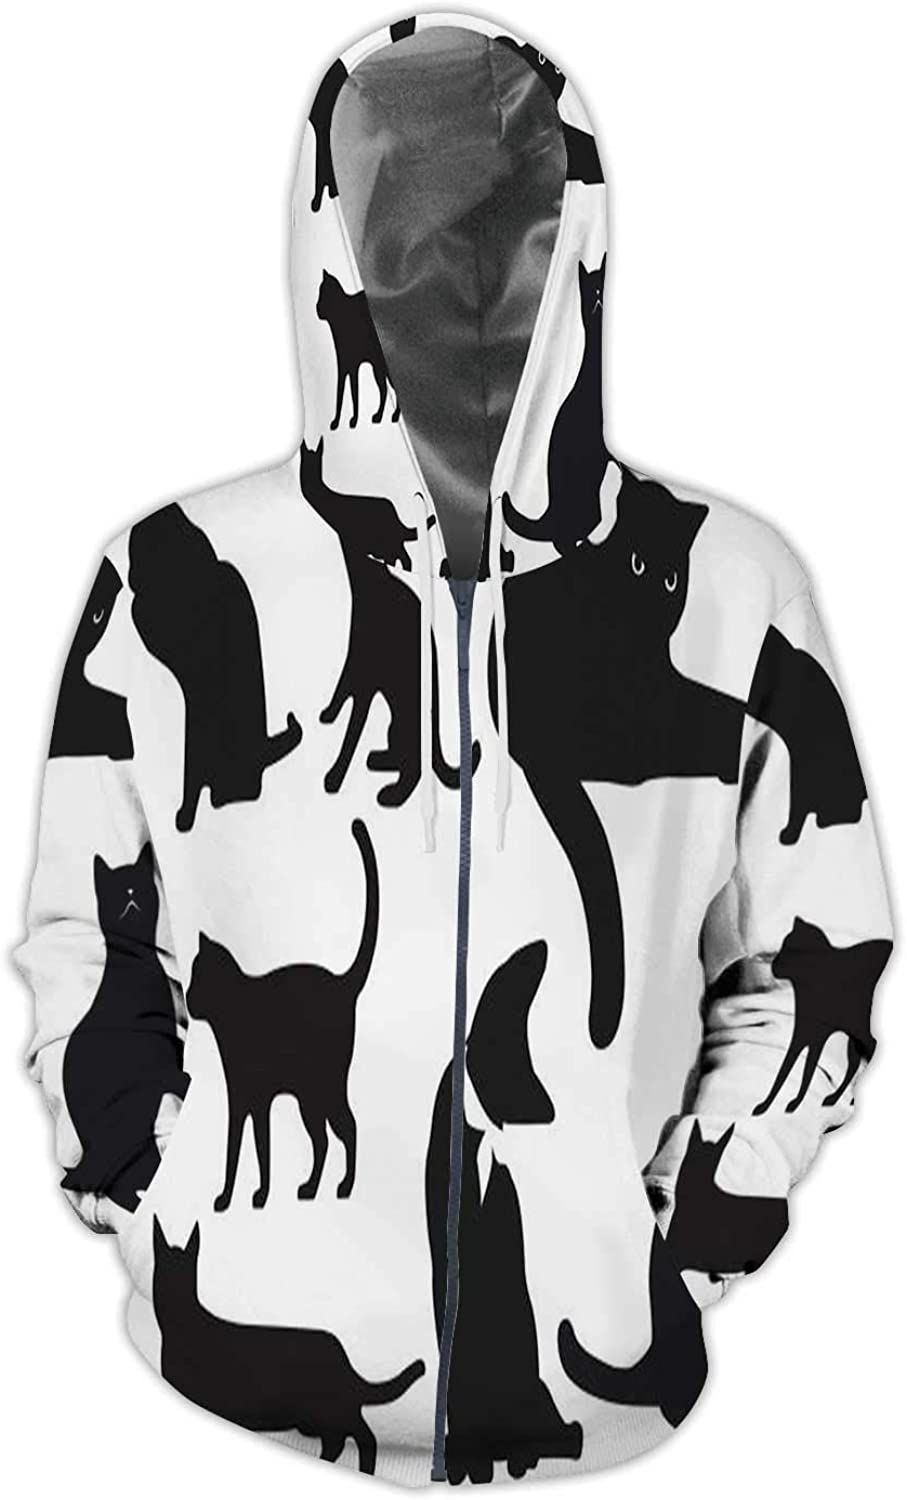 Creative Fish Tank Background Surreal,Men//Womens Warm Outerwear Jackets and Hoodies Bizarre S